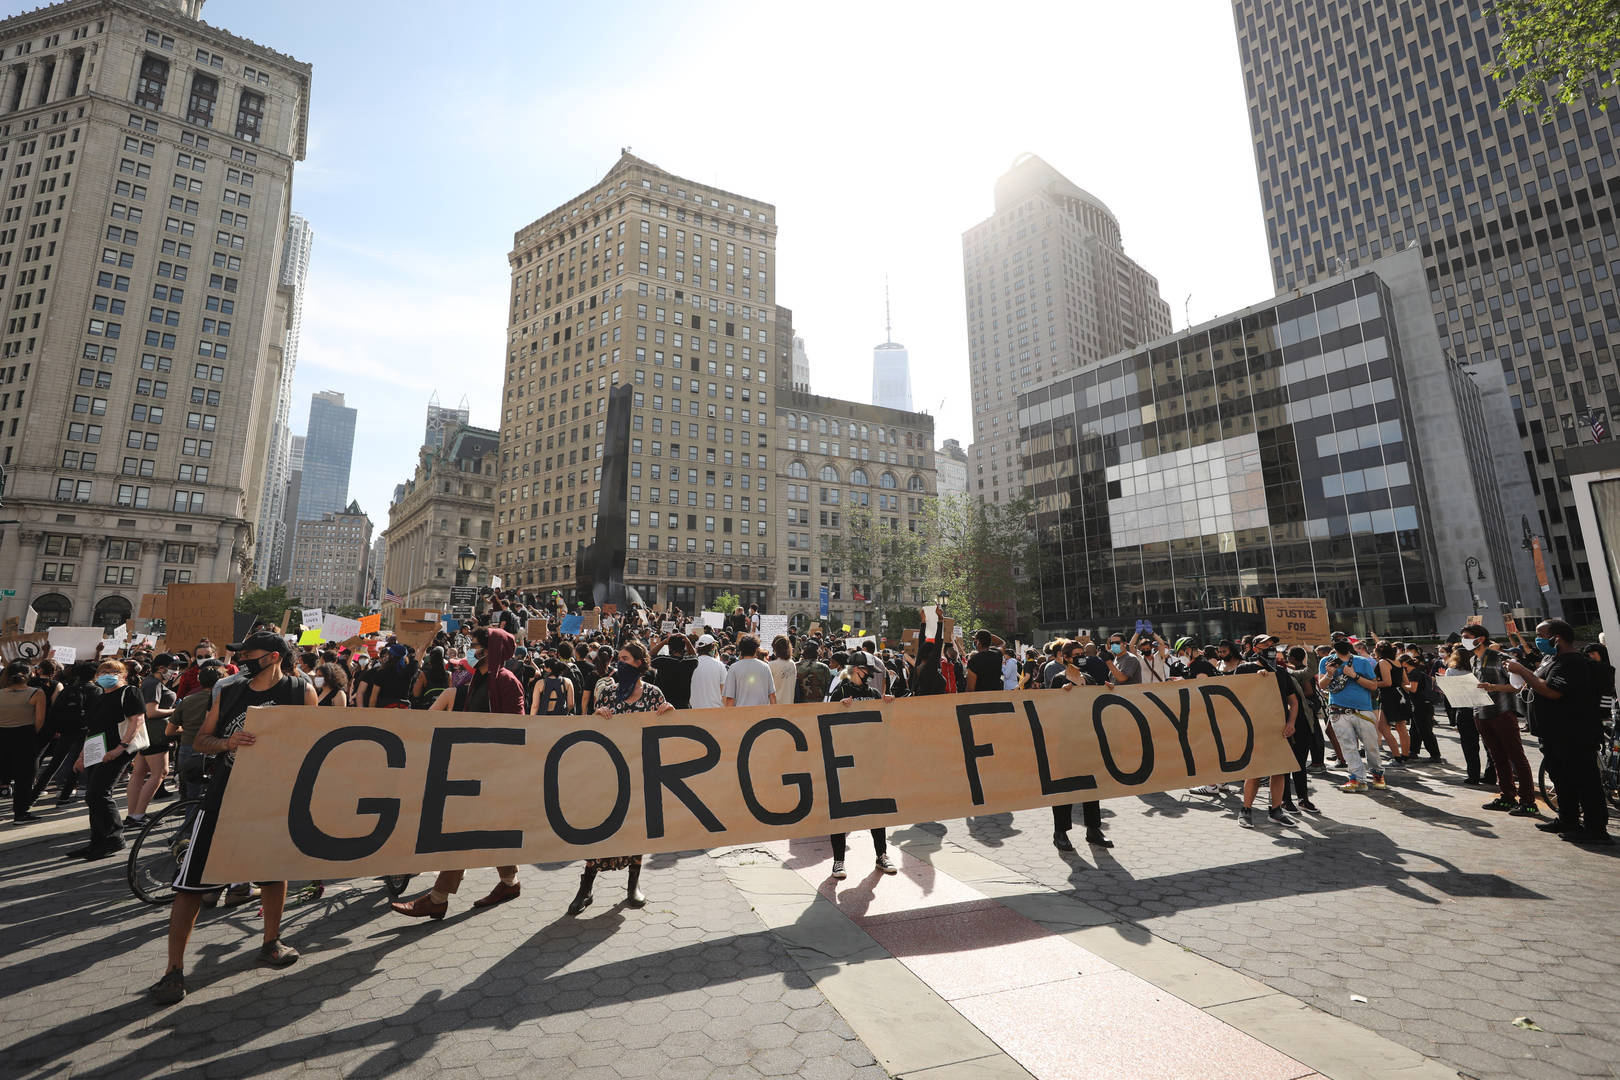 George Floyd Will Be Laid To Rest In Texas Hometown, Says Houston's Mayor